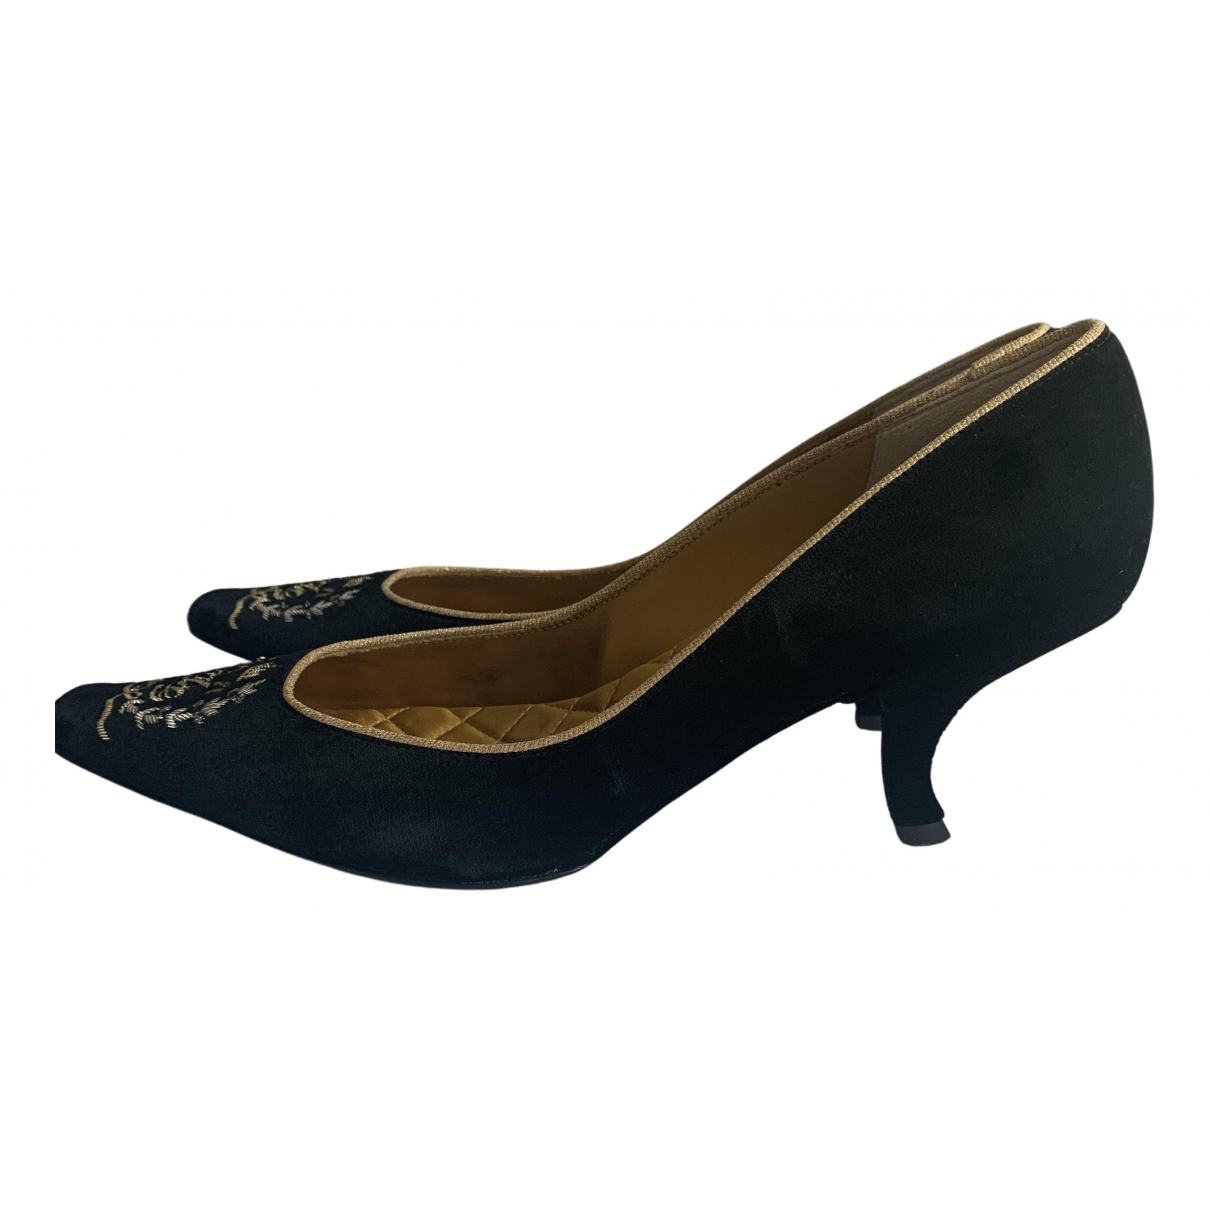 Dolce & Gabbana N Black Velvet Heels for Women 39 EU